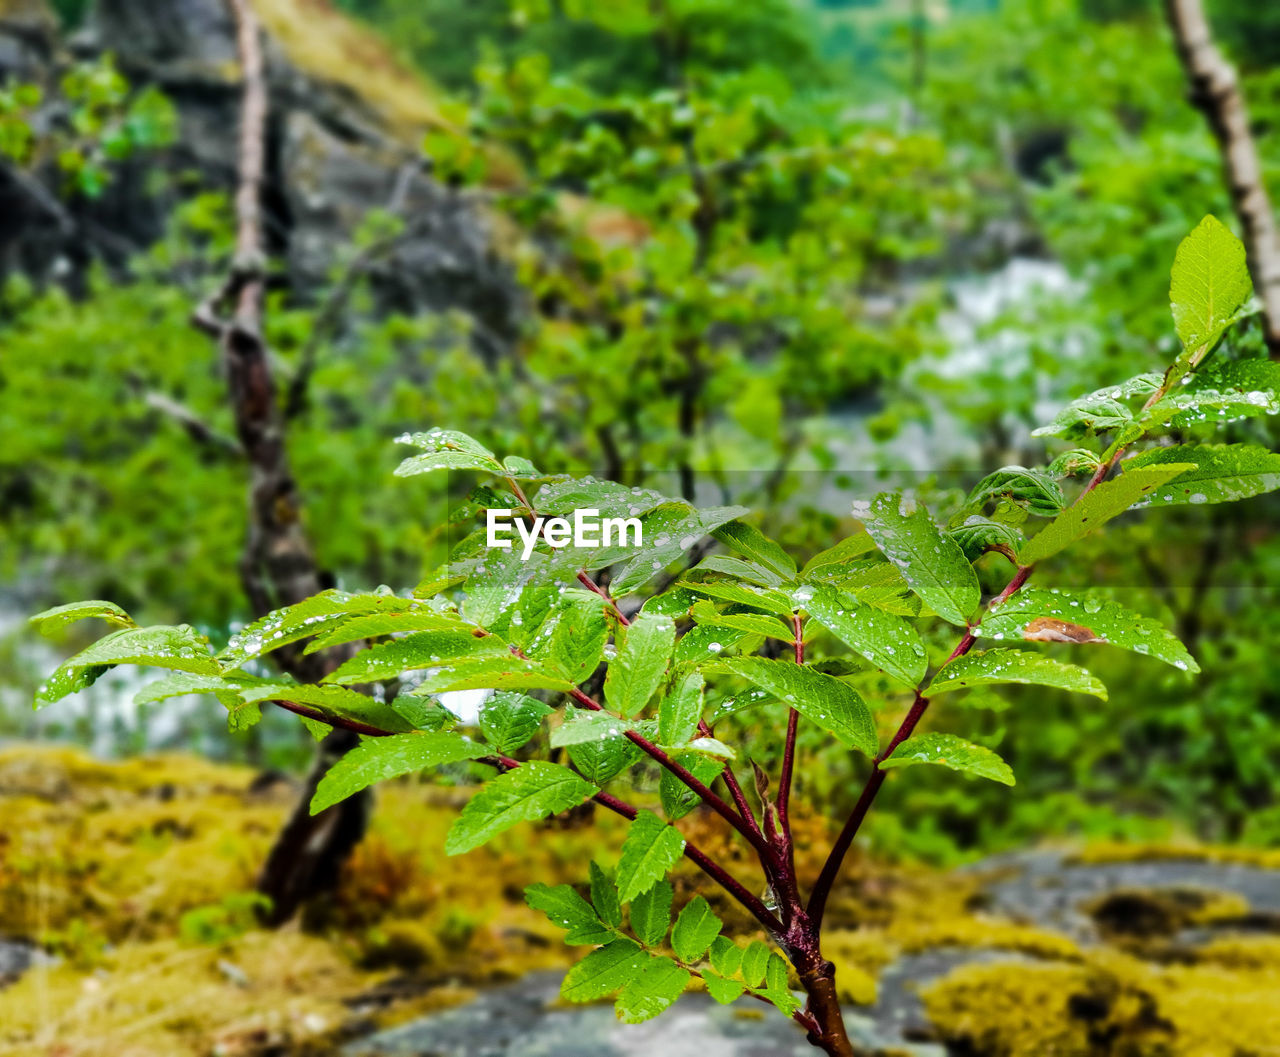 growth, green color, leaf, plant, plant part, beauty in nature, focus on foreground, day, nature, close-up, no people, land, outdoors, tranquility, wet, selective focus, field, tree, forest, freshness, leaves